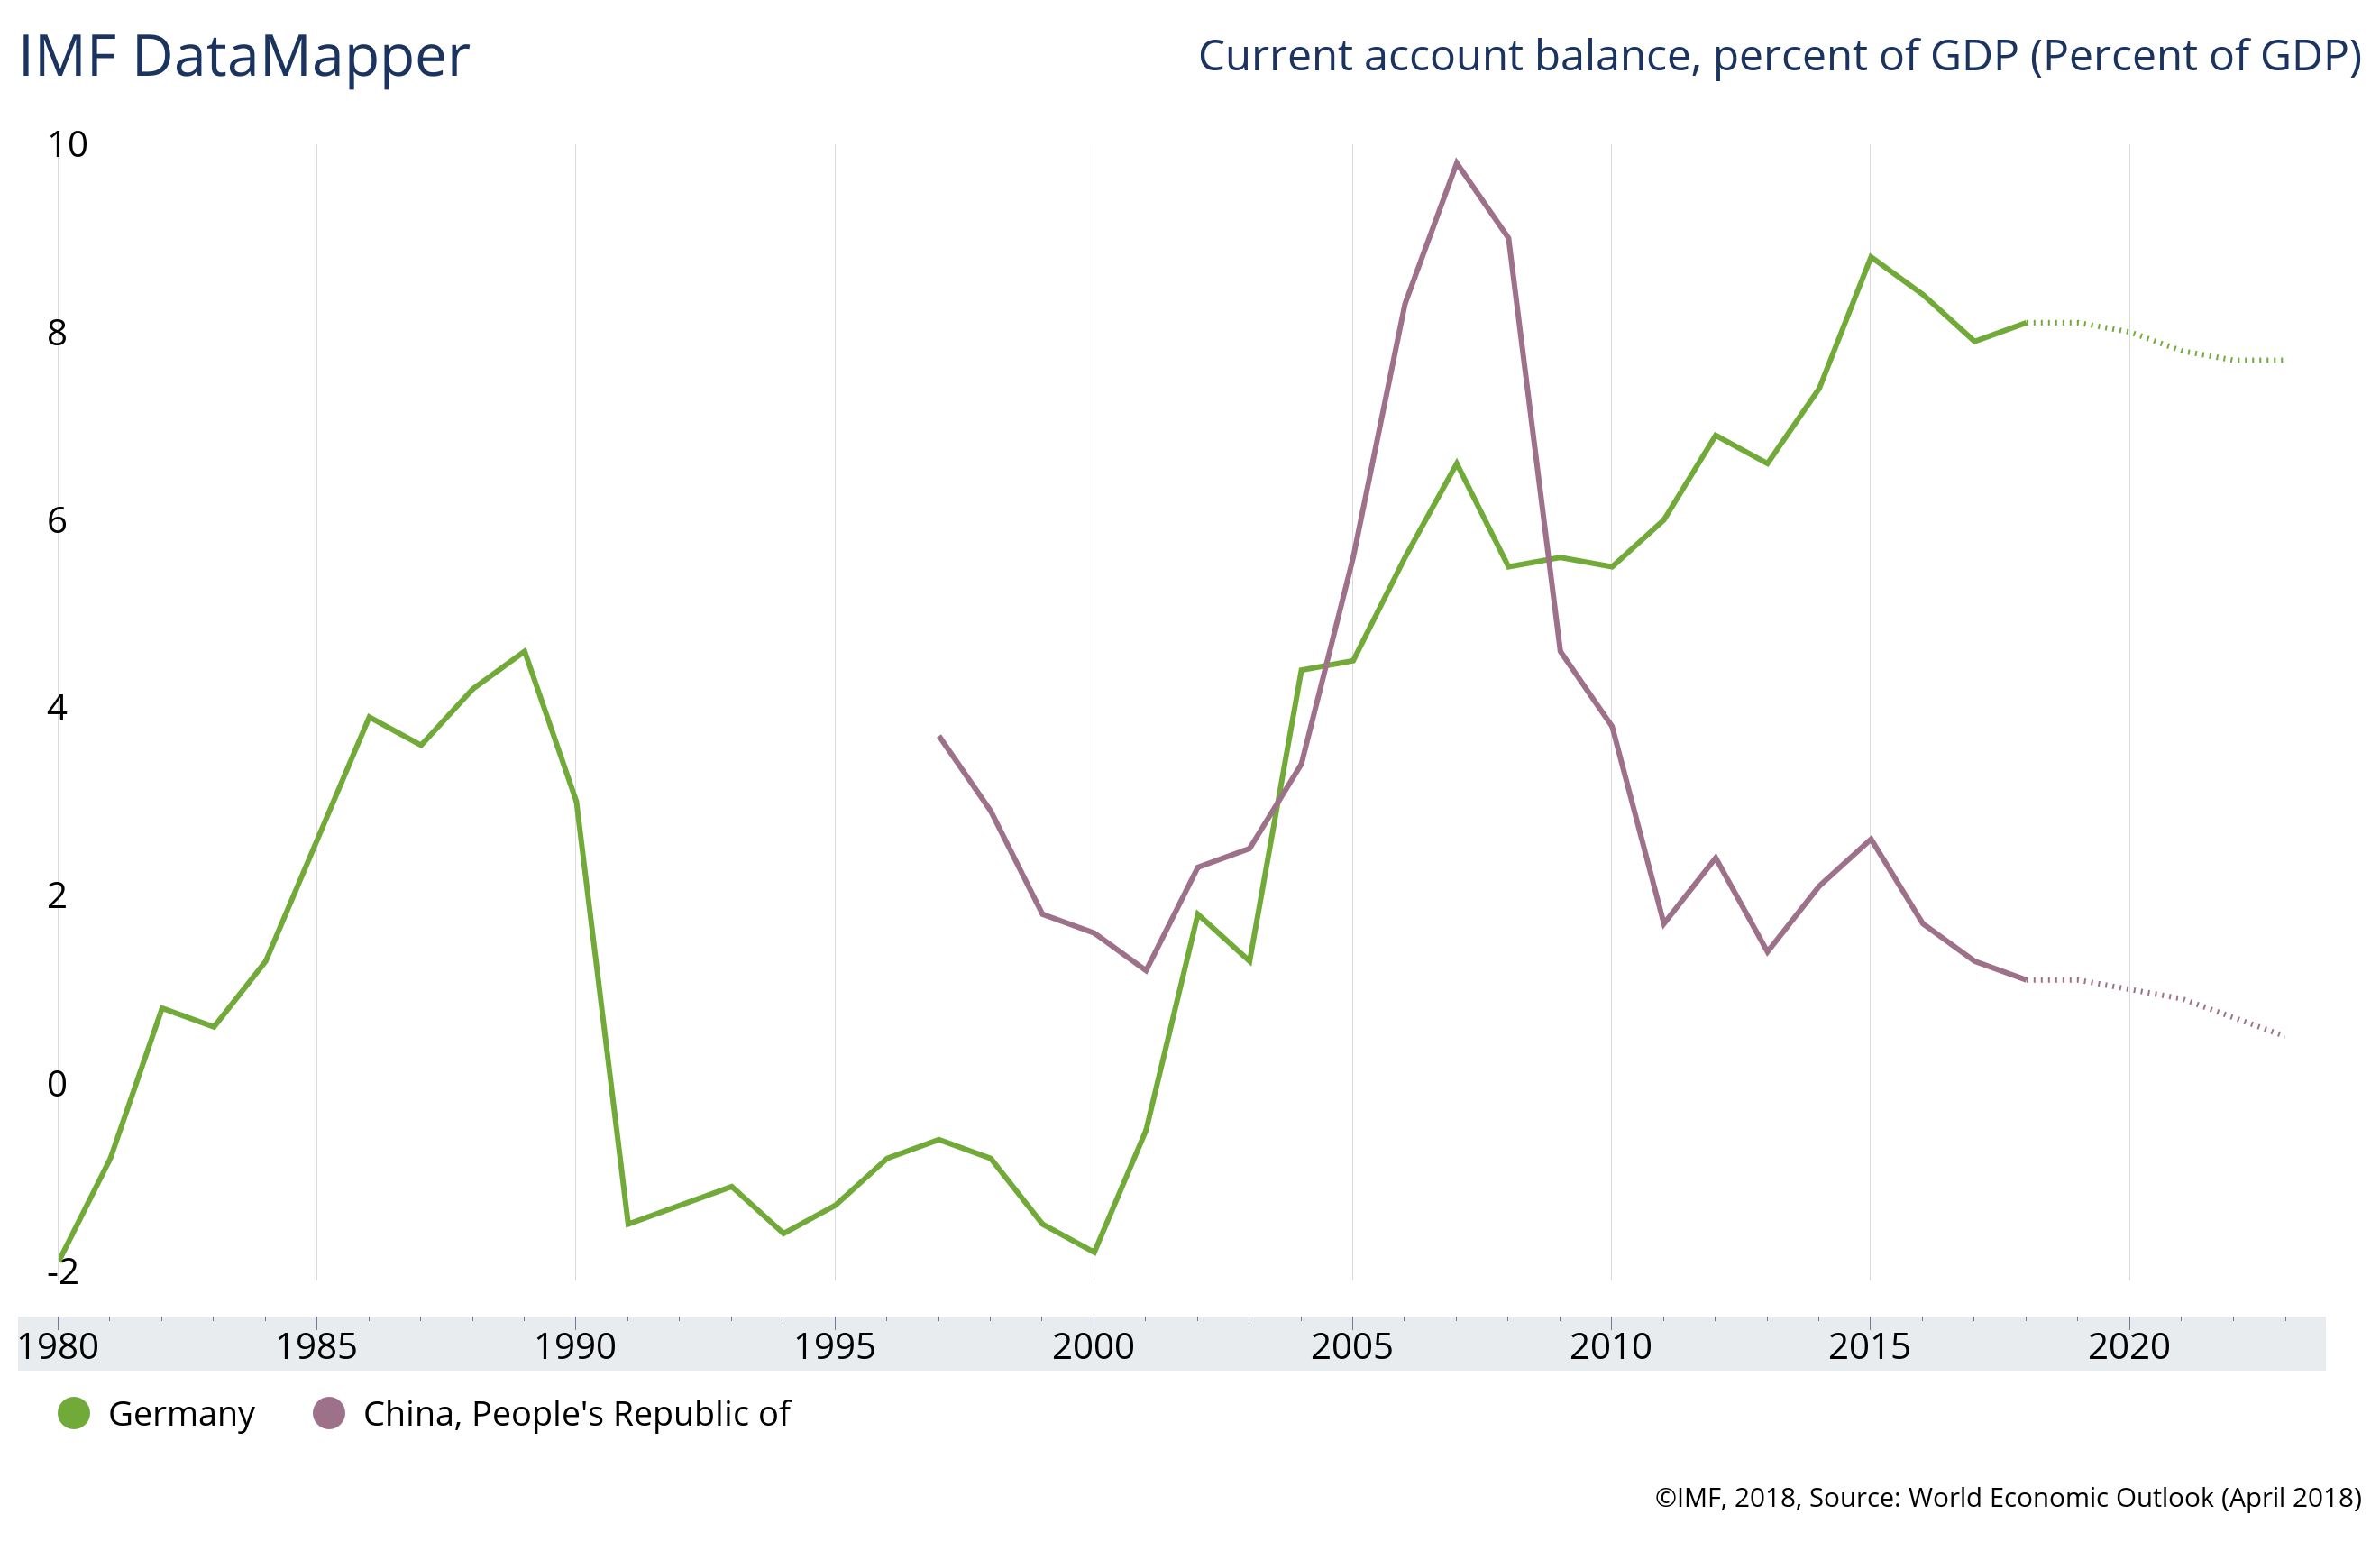 Current account surpluses of Germany and China, source IMF DataMapper.